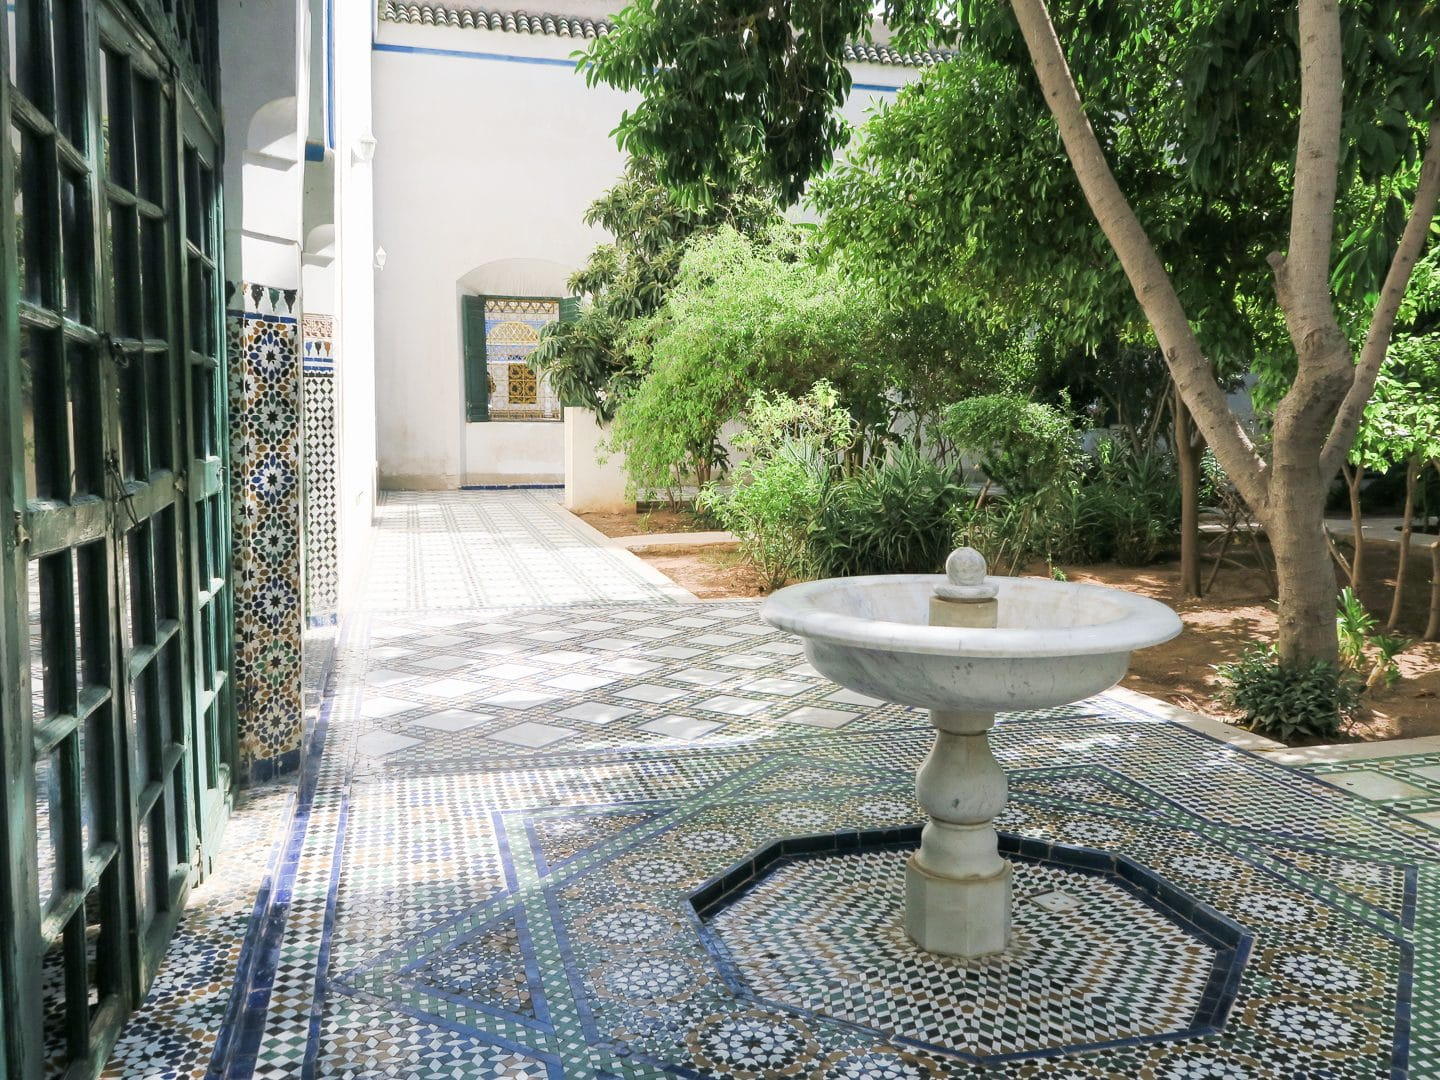 Bahia Palace in Marrakech, Morocco | Curiously Conscious